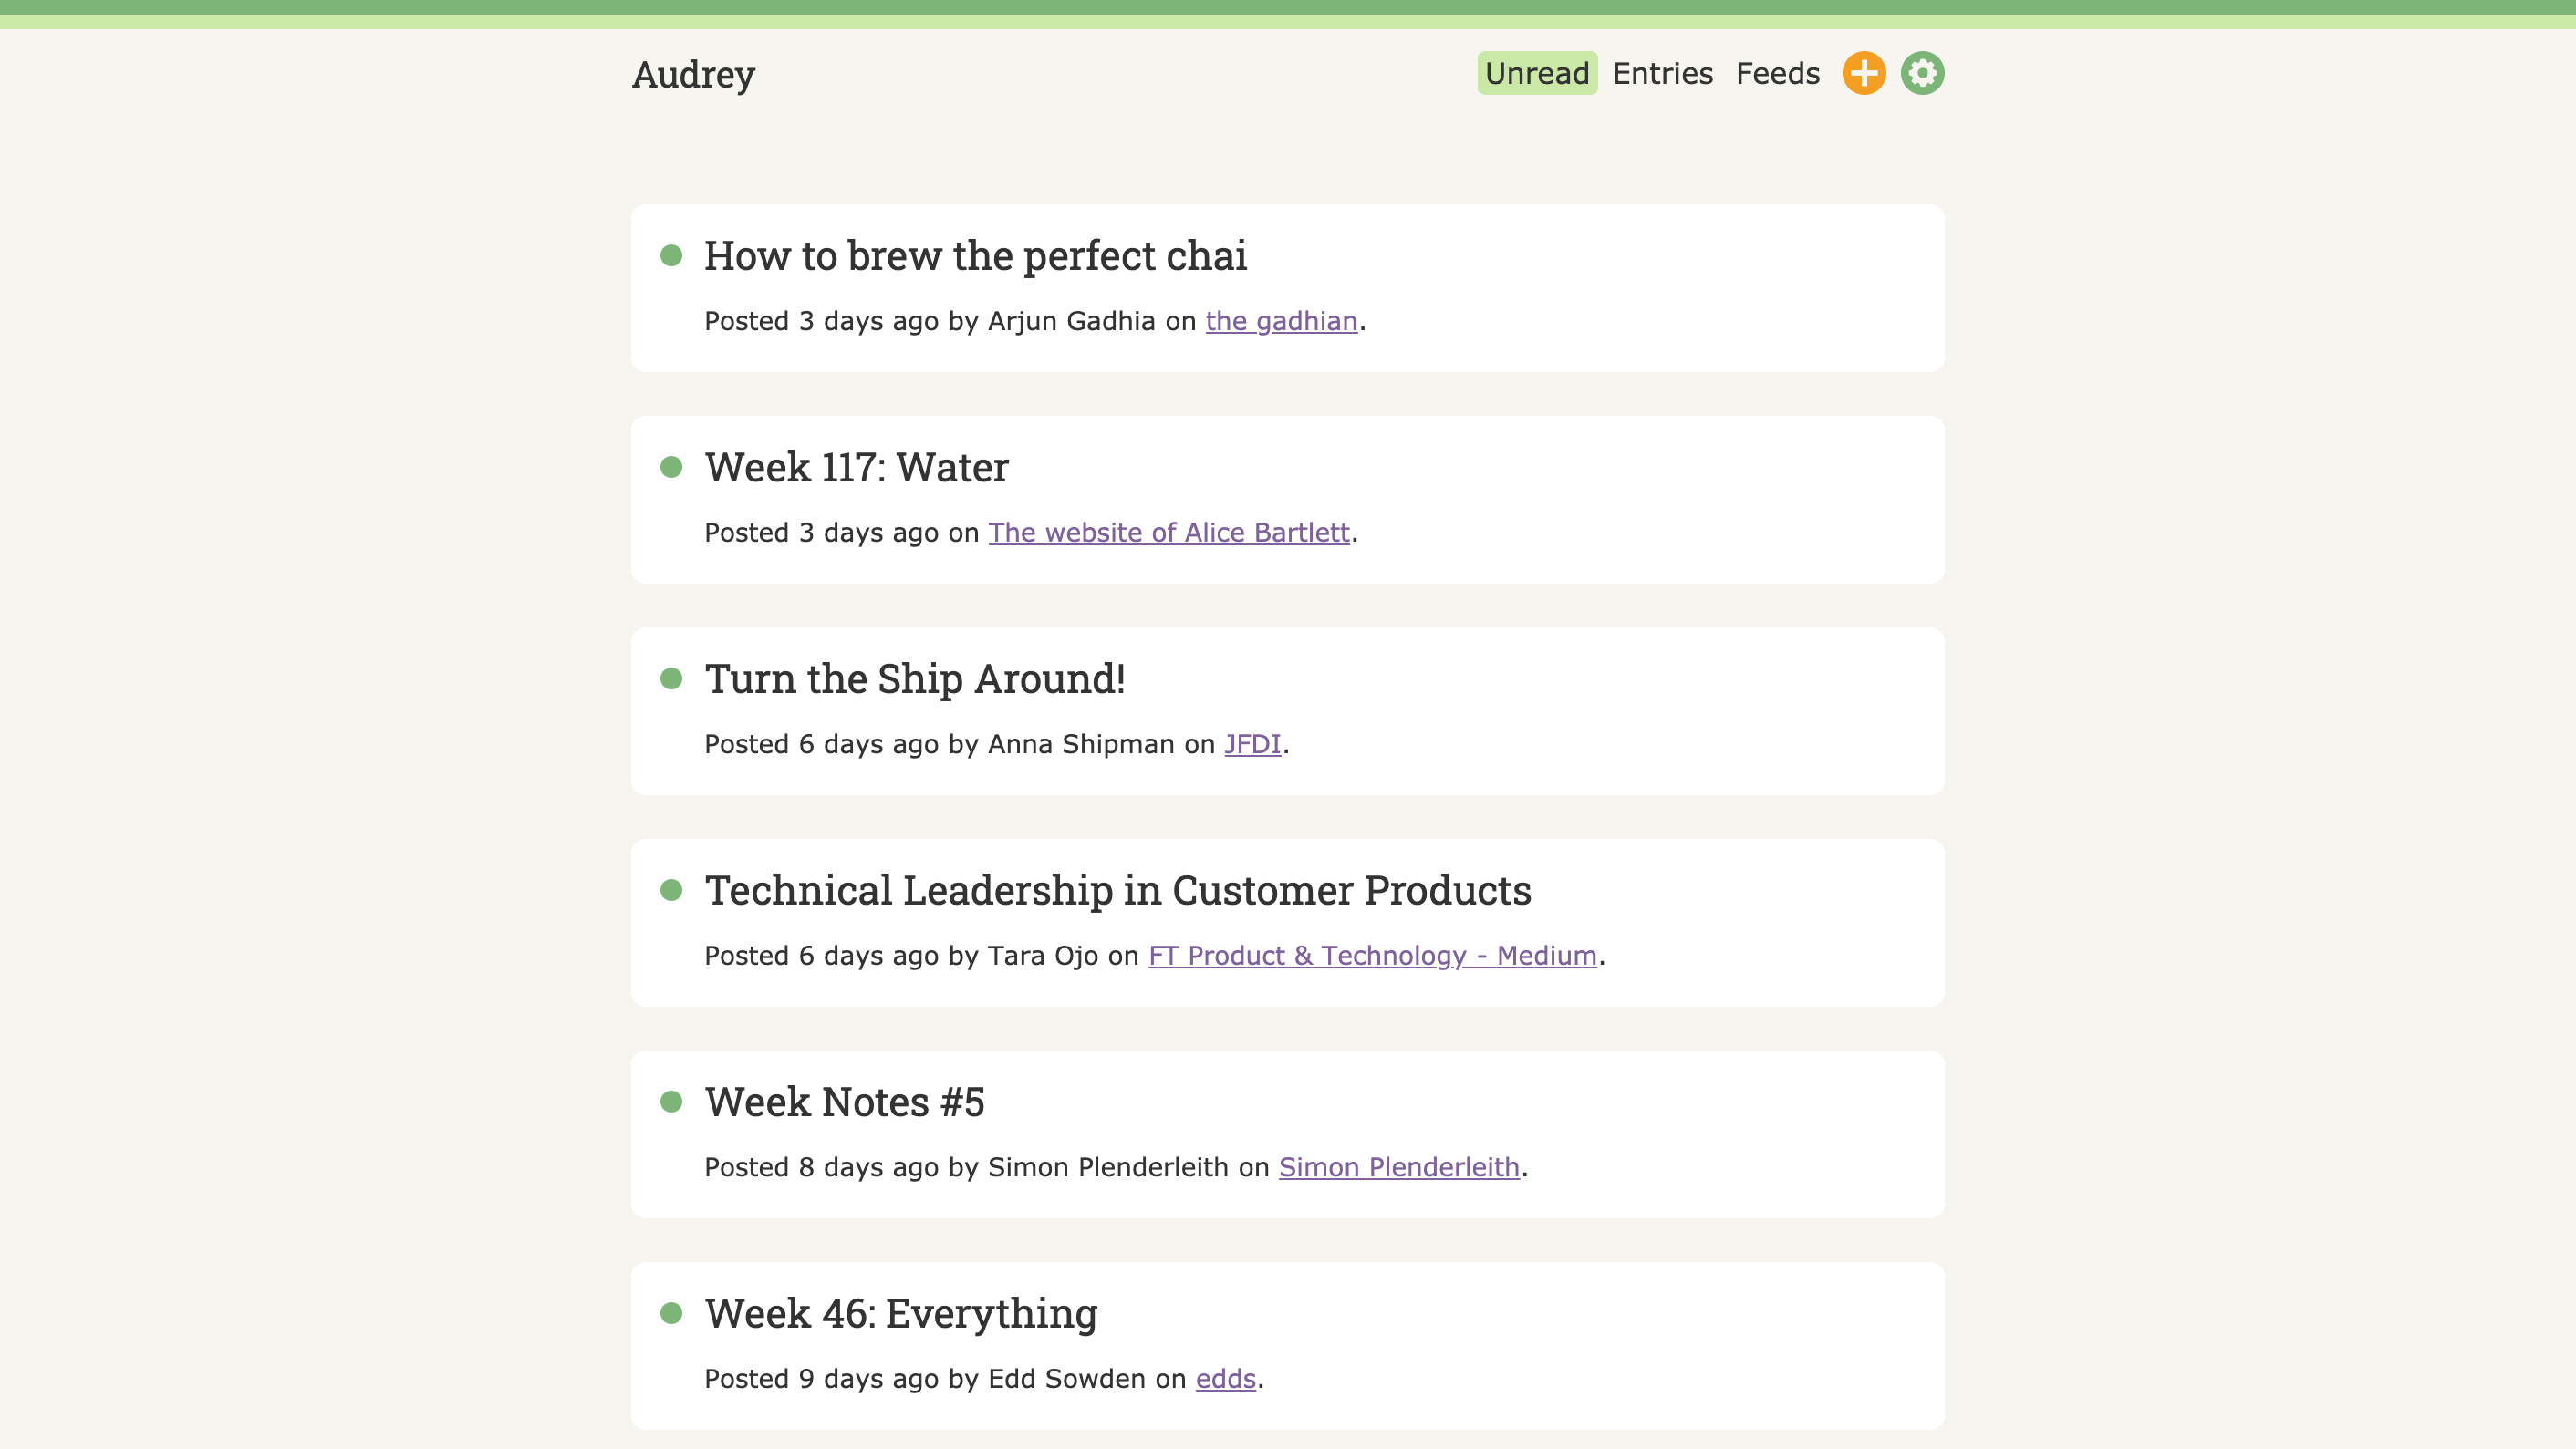 A screenshot of the Audrey home page, showing unread entries from my feeds